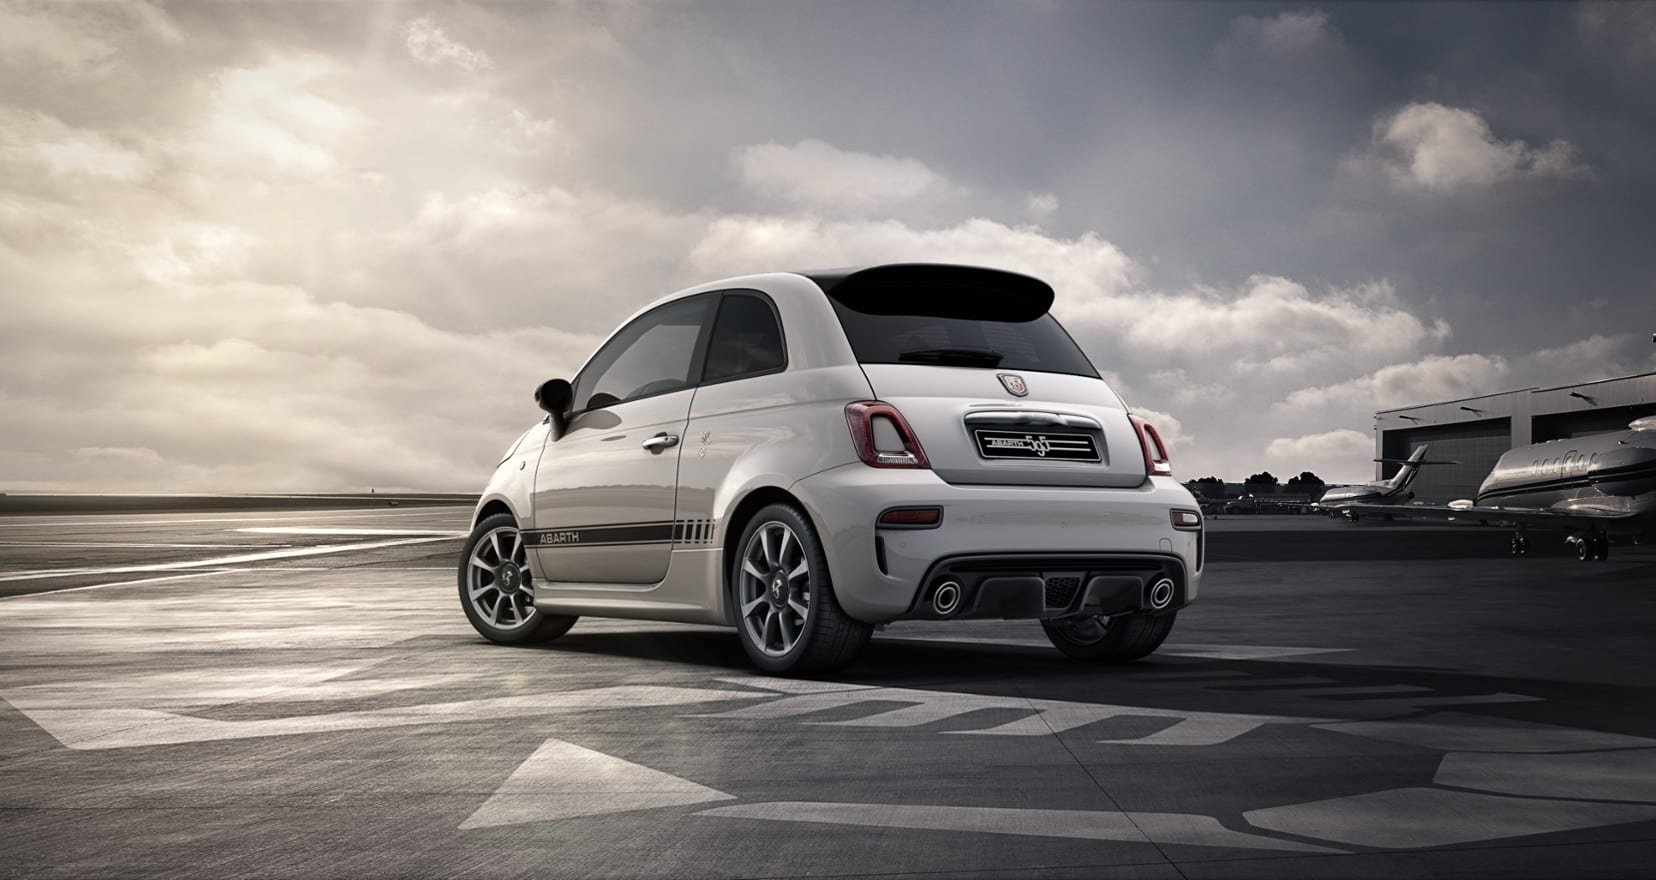 Abarth 595 Wit - achterkant